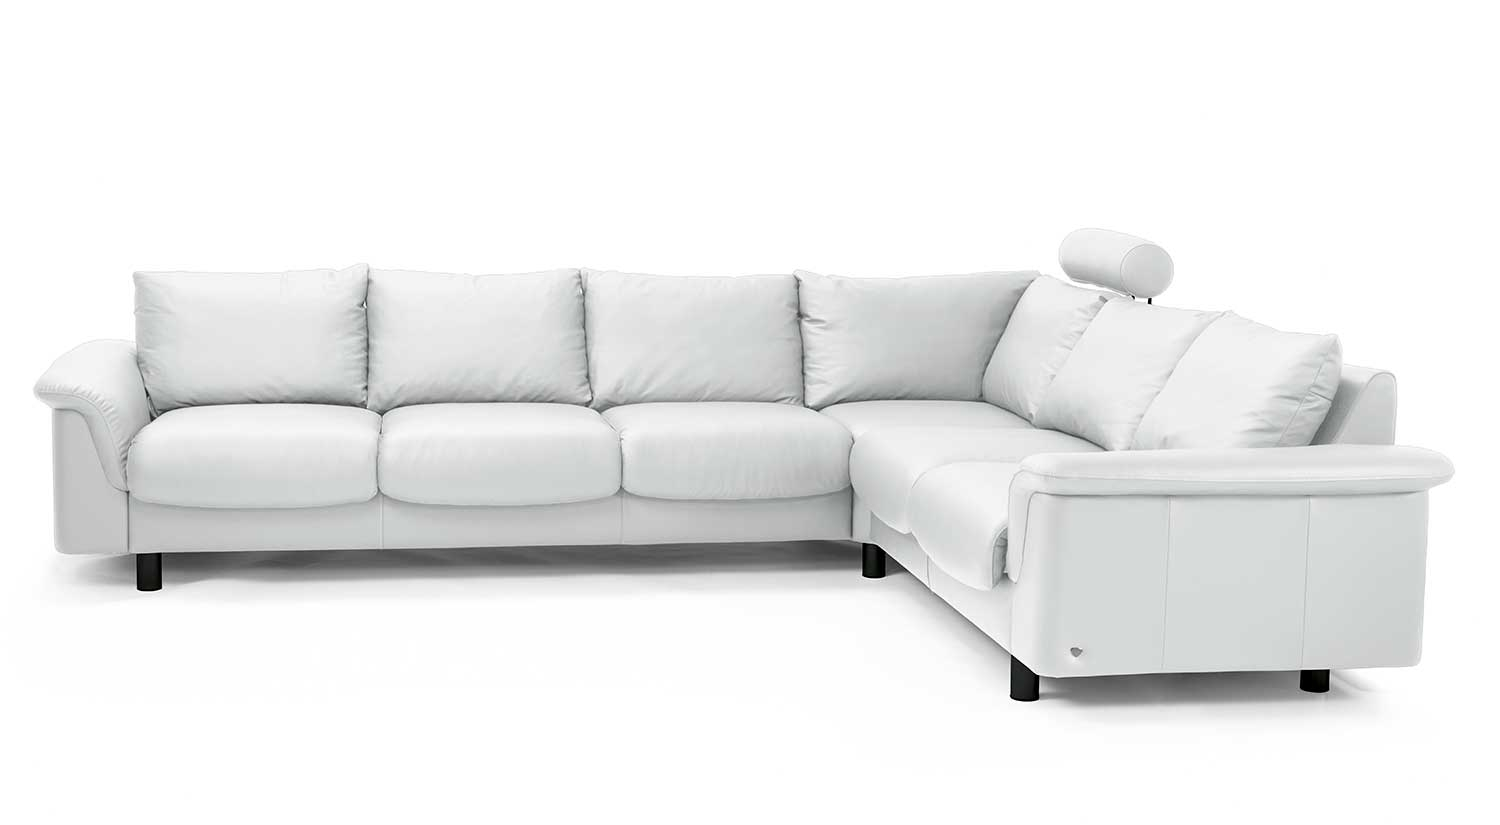 Circle Furniture E300 Ekornes Sectional Designer Sectionals Ma Pertaining To Ekornes Sectional Sofa (#1 of 12)